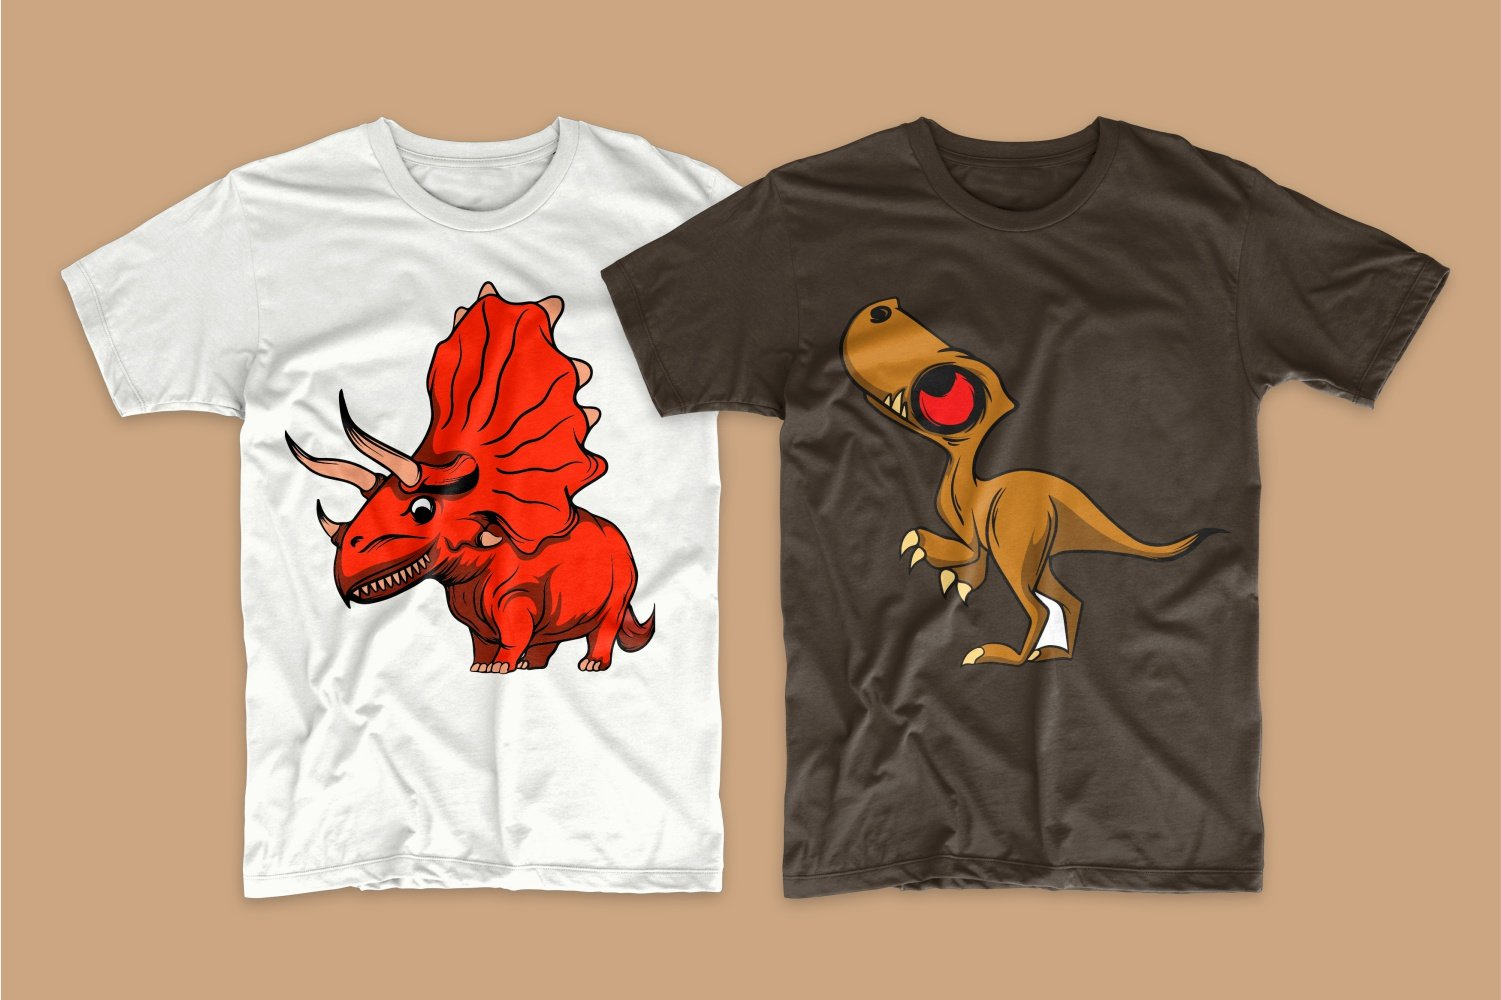 White T-shirt with a red dragon and brown with a small brown dragon.